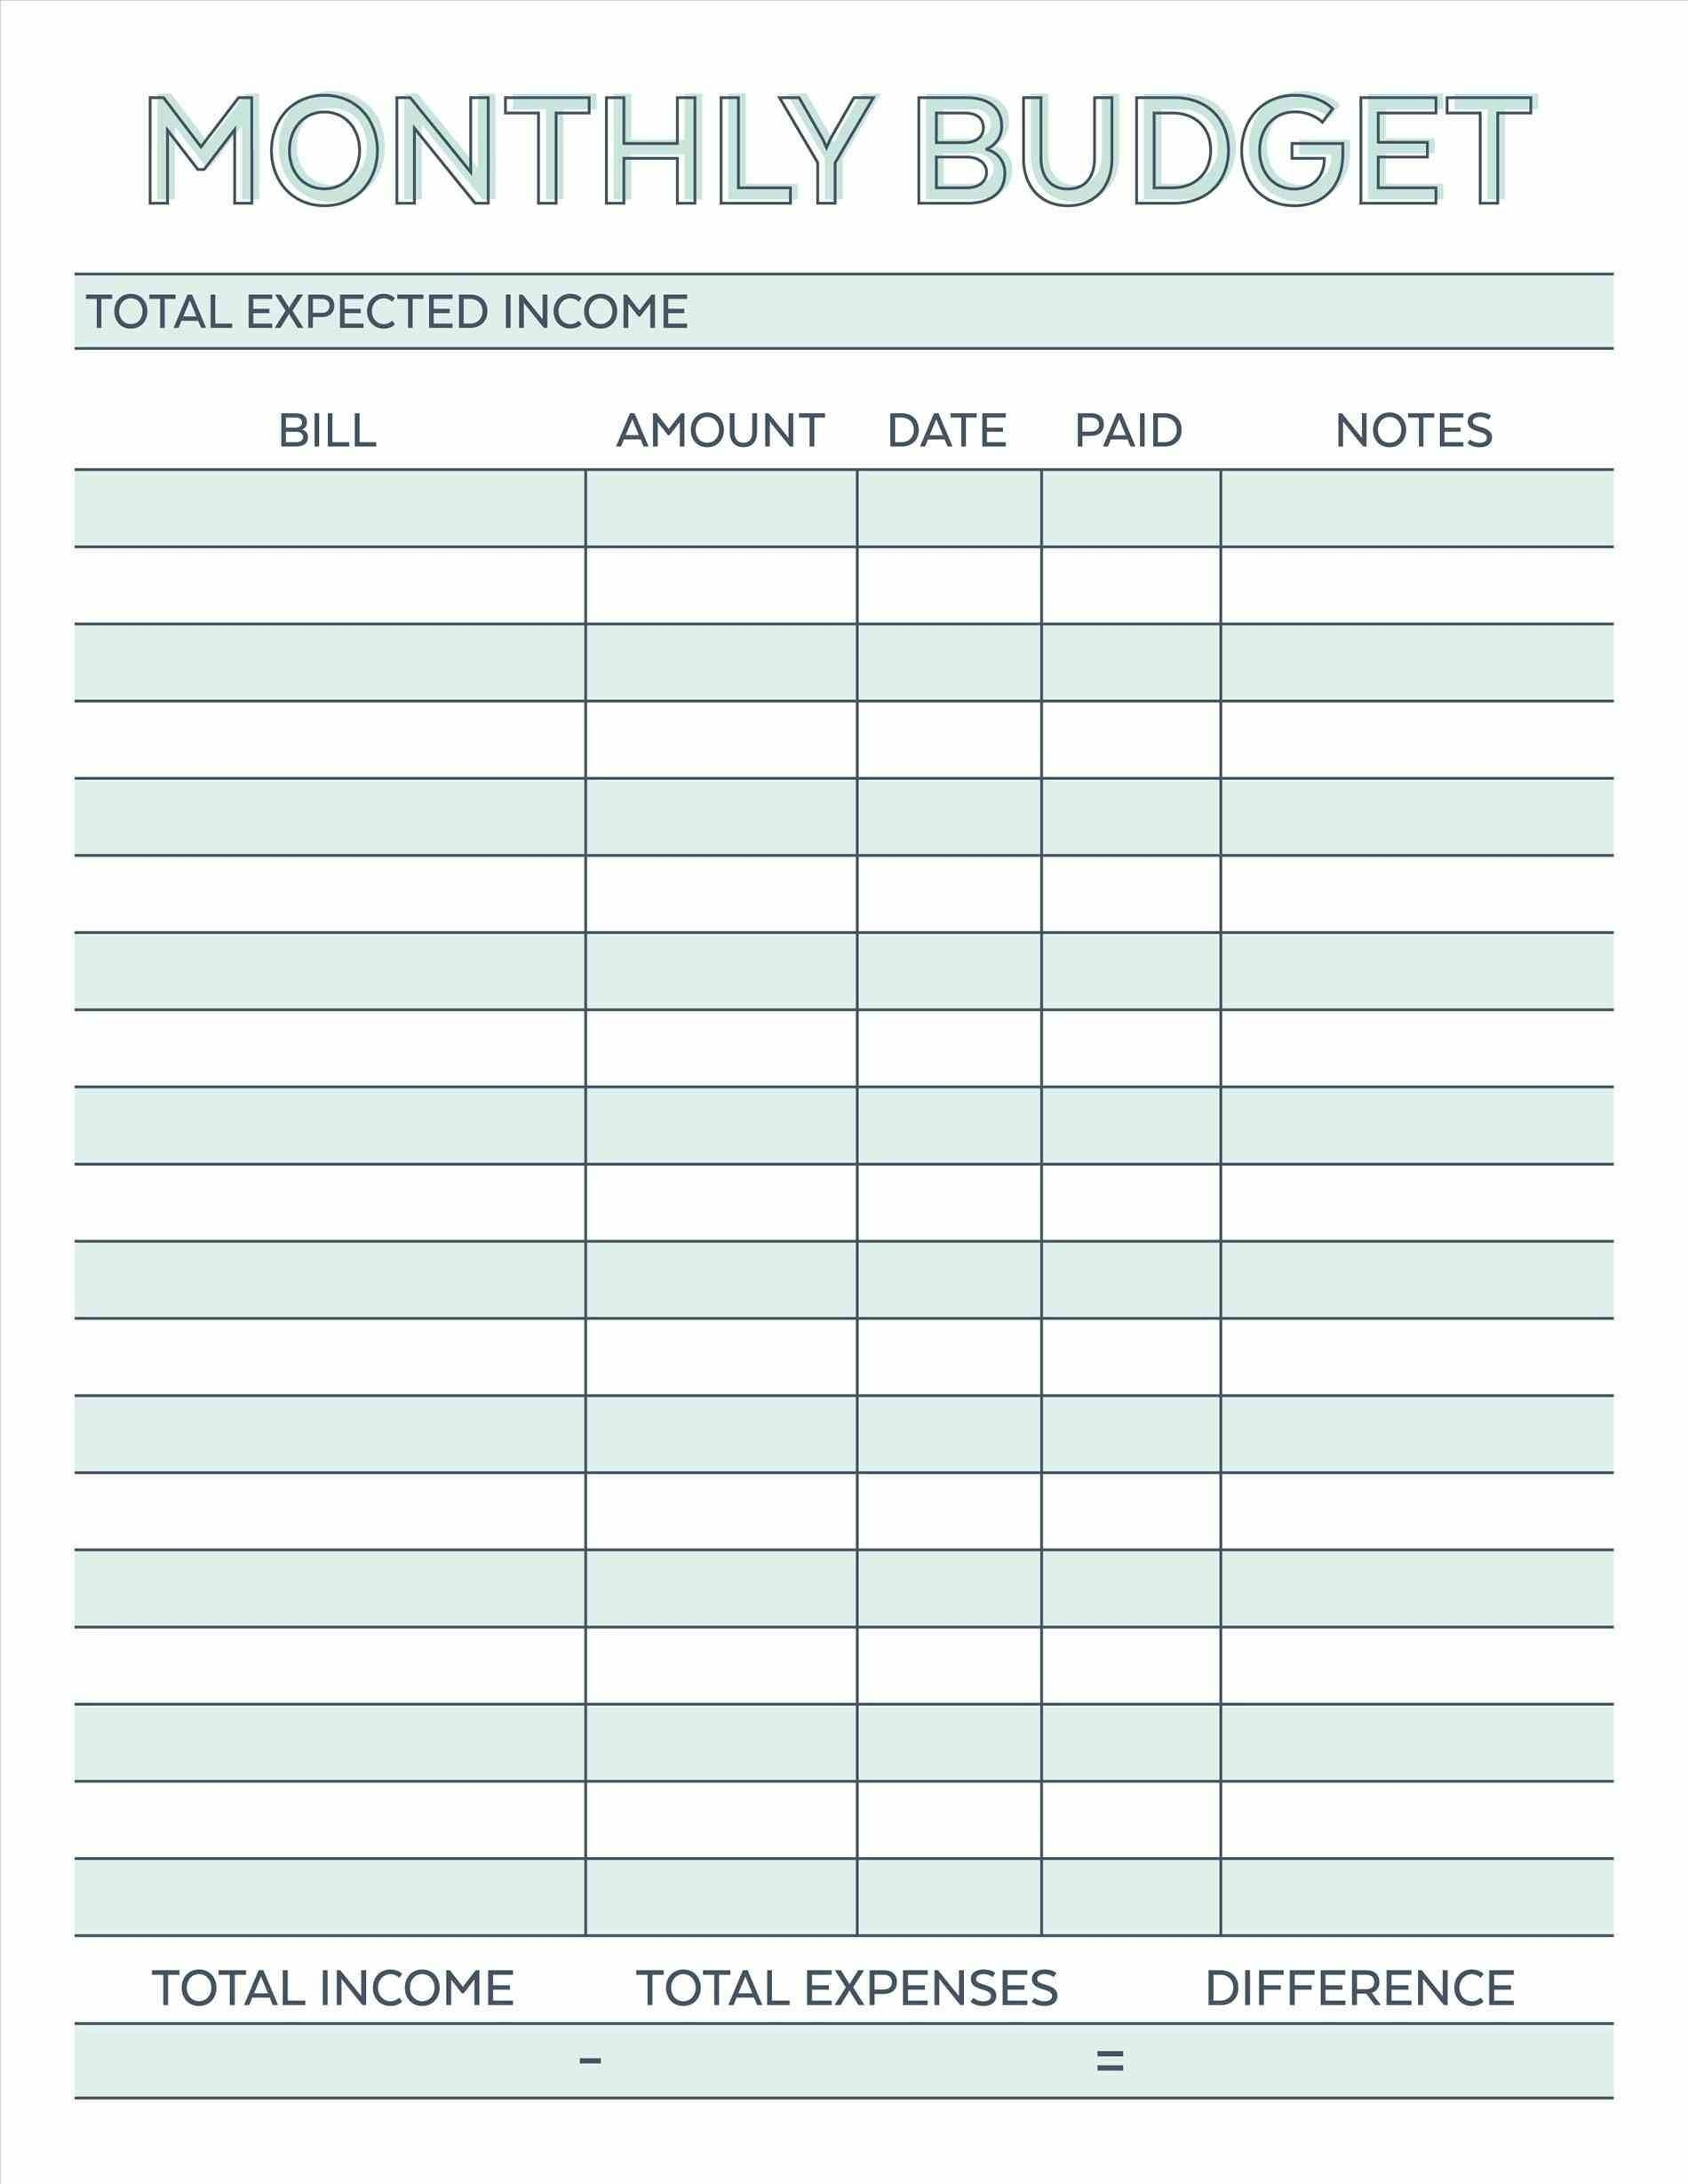 Budget Planner Planner Worksheet Monthly Bills Template Free within Bill Organizer Free Print Month Year